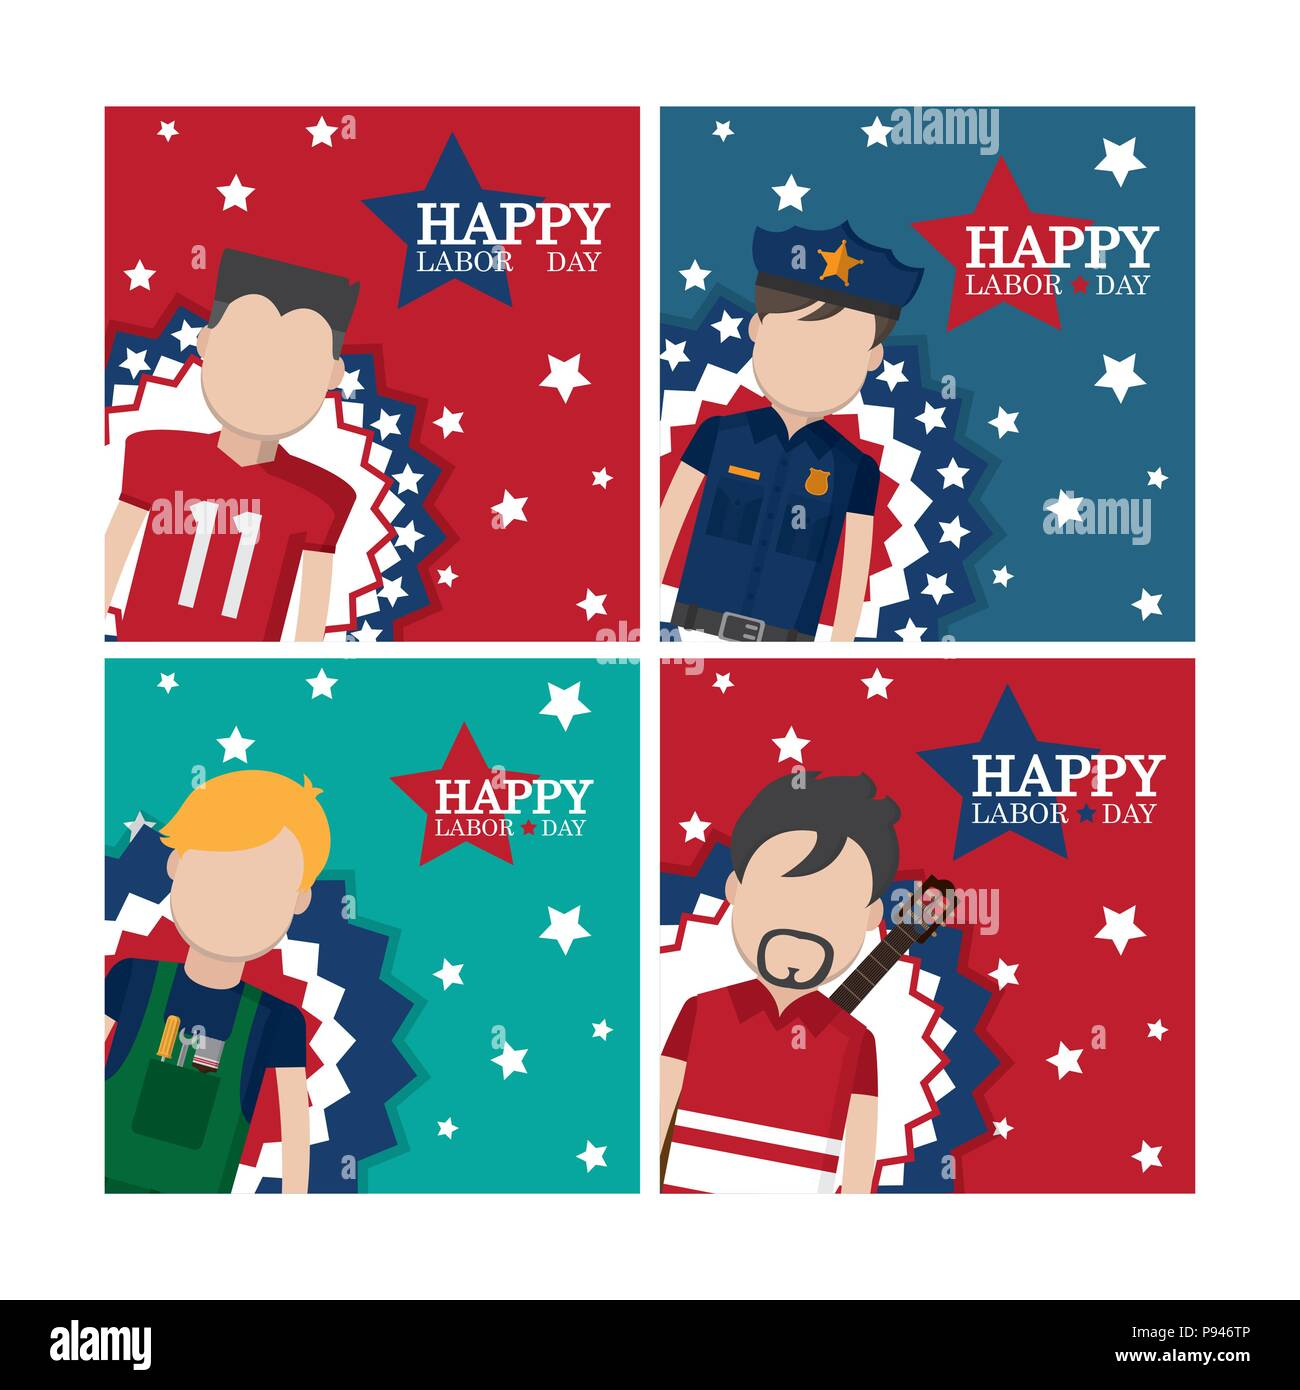 Set Of Happy Labor Day Cards With Workers Cartoons Vector